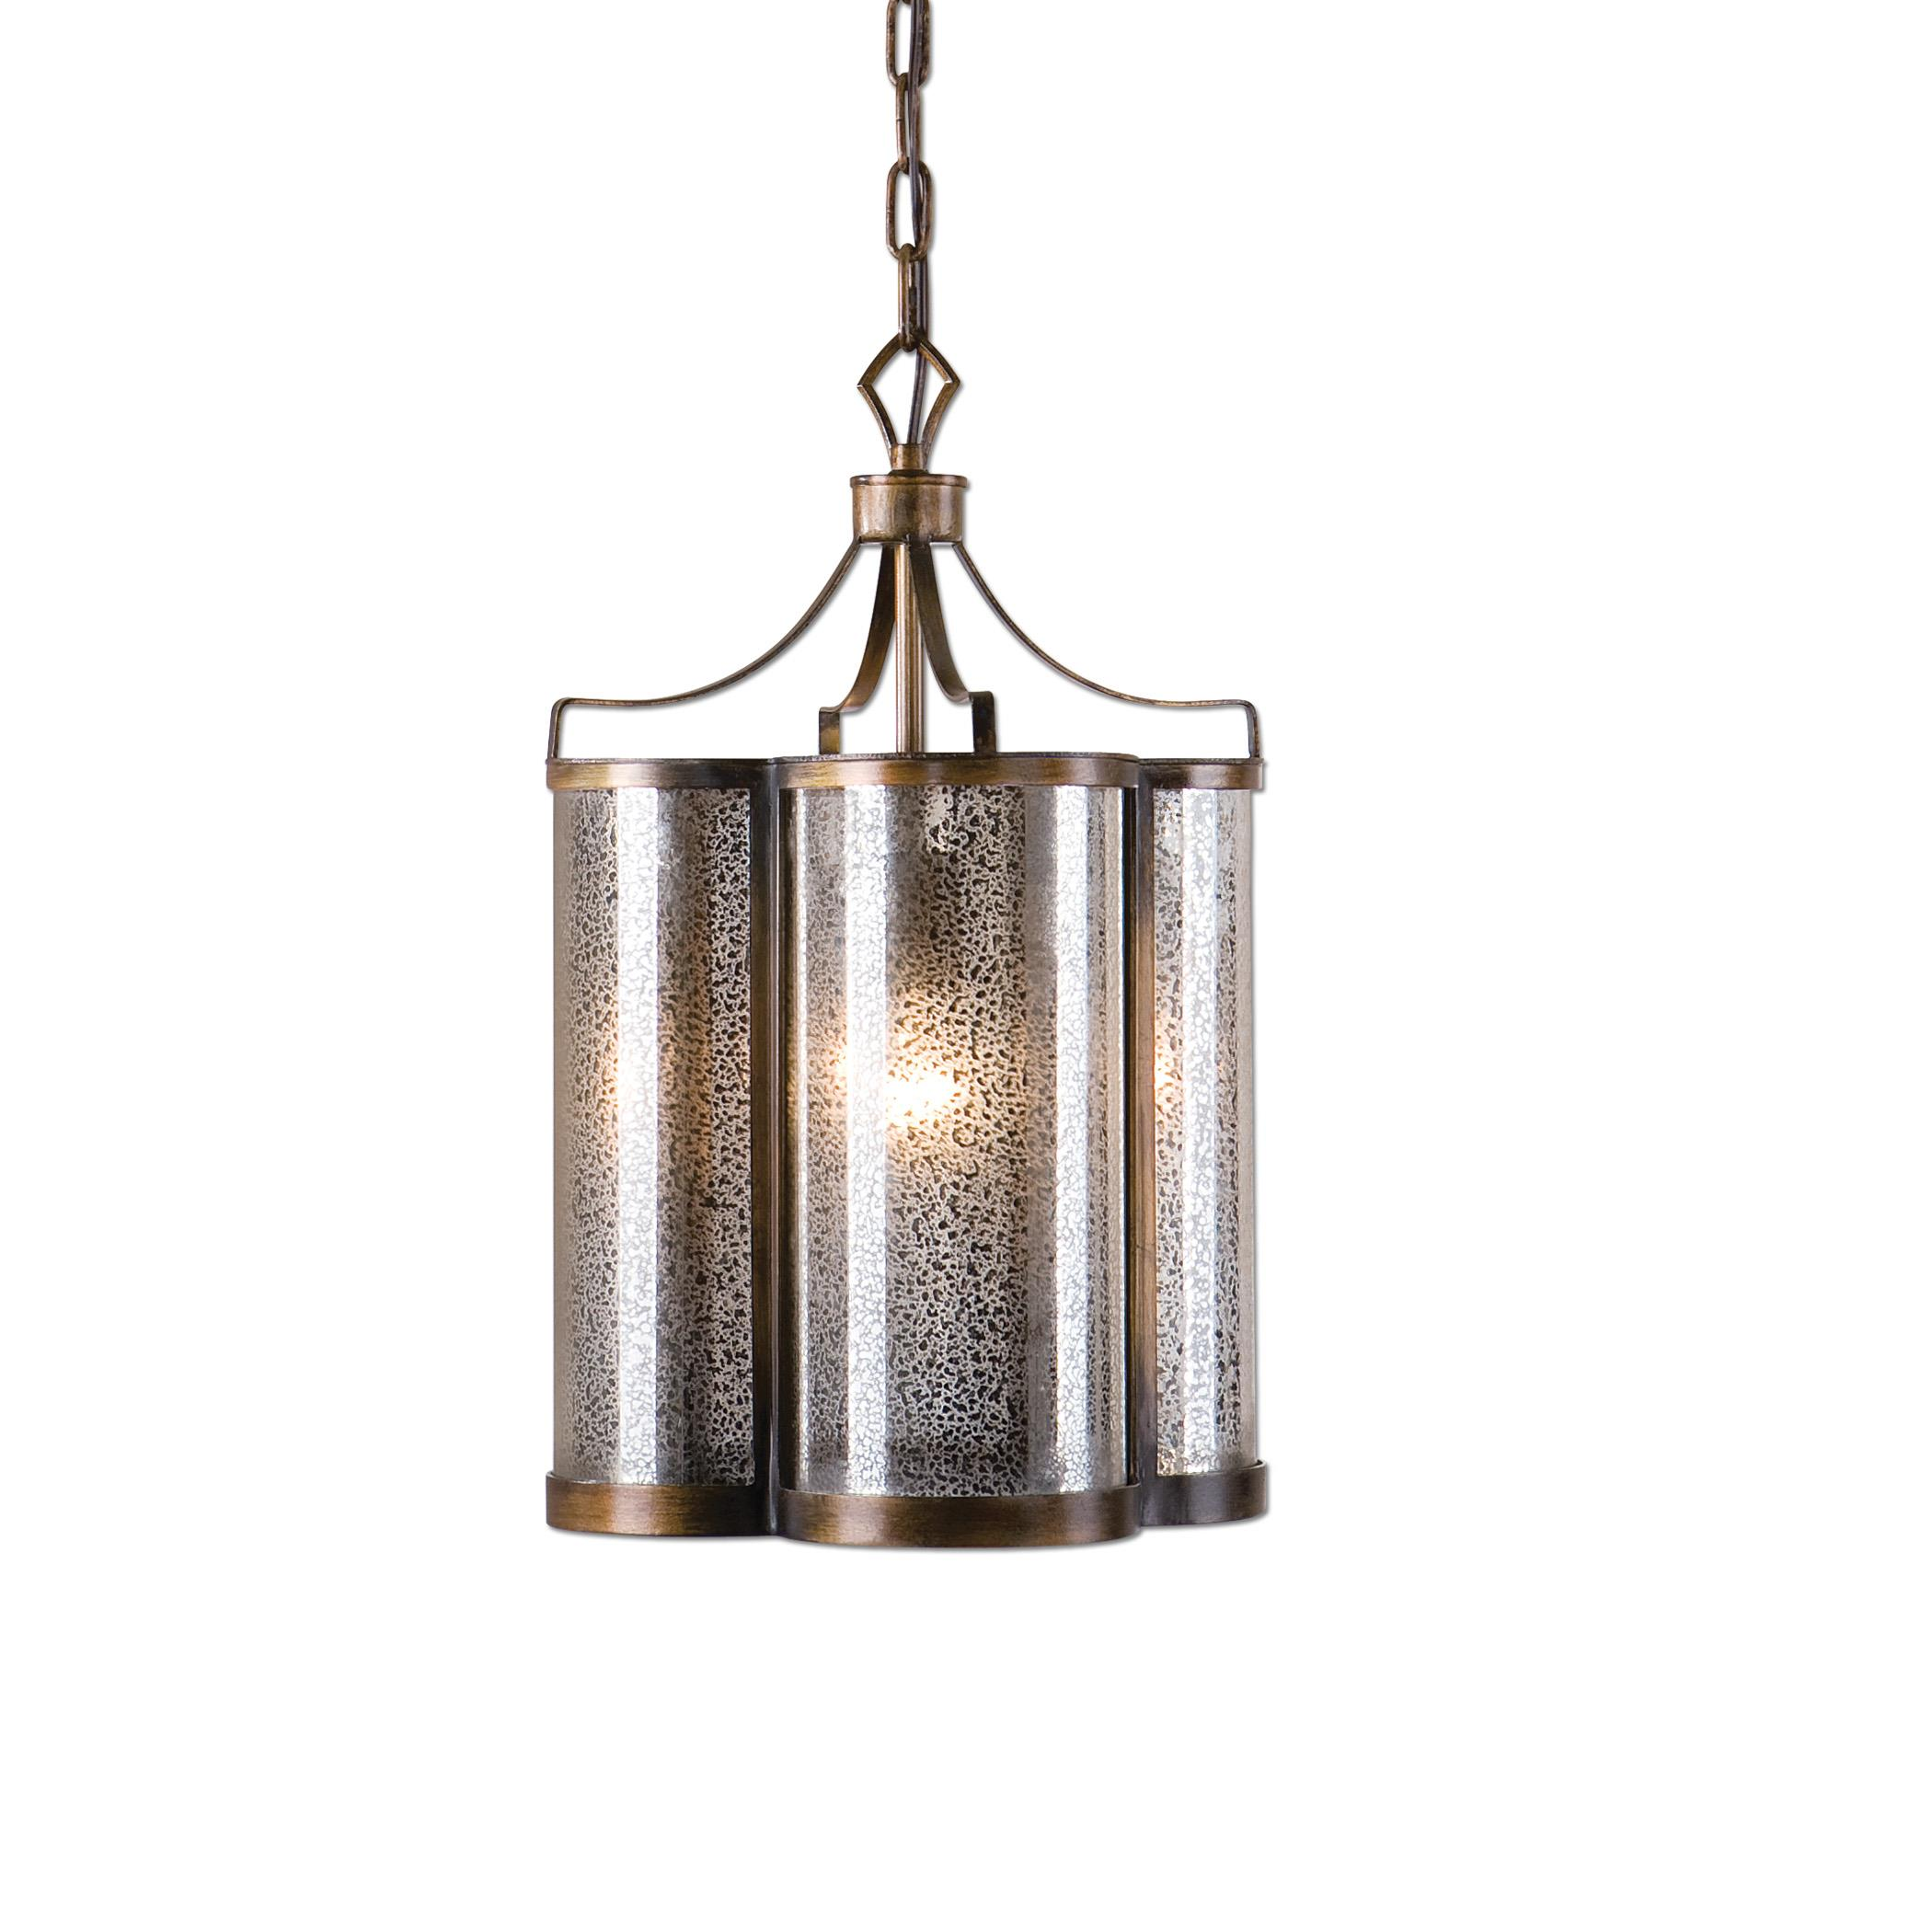 Uttermost Lighting Fixtures Croydon 1 Light Mercury Glass Pendant - Item Number: 22061